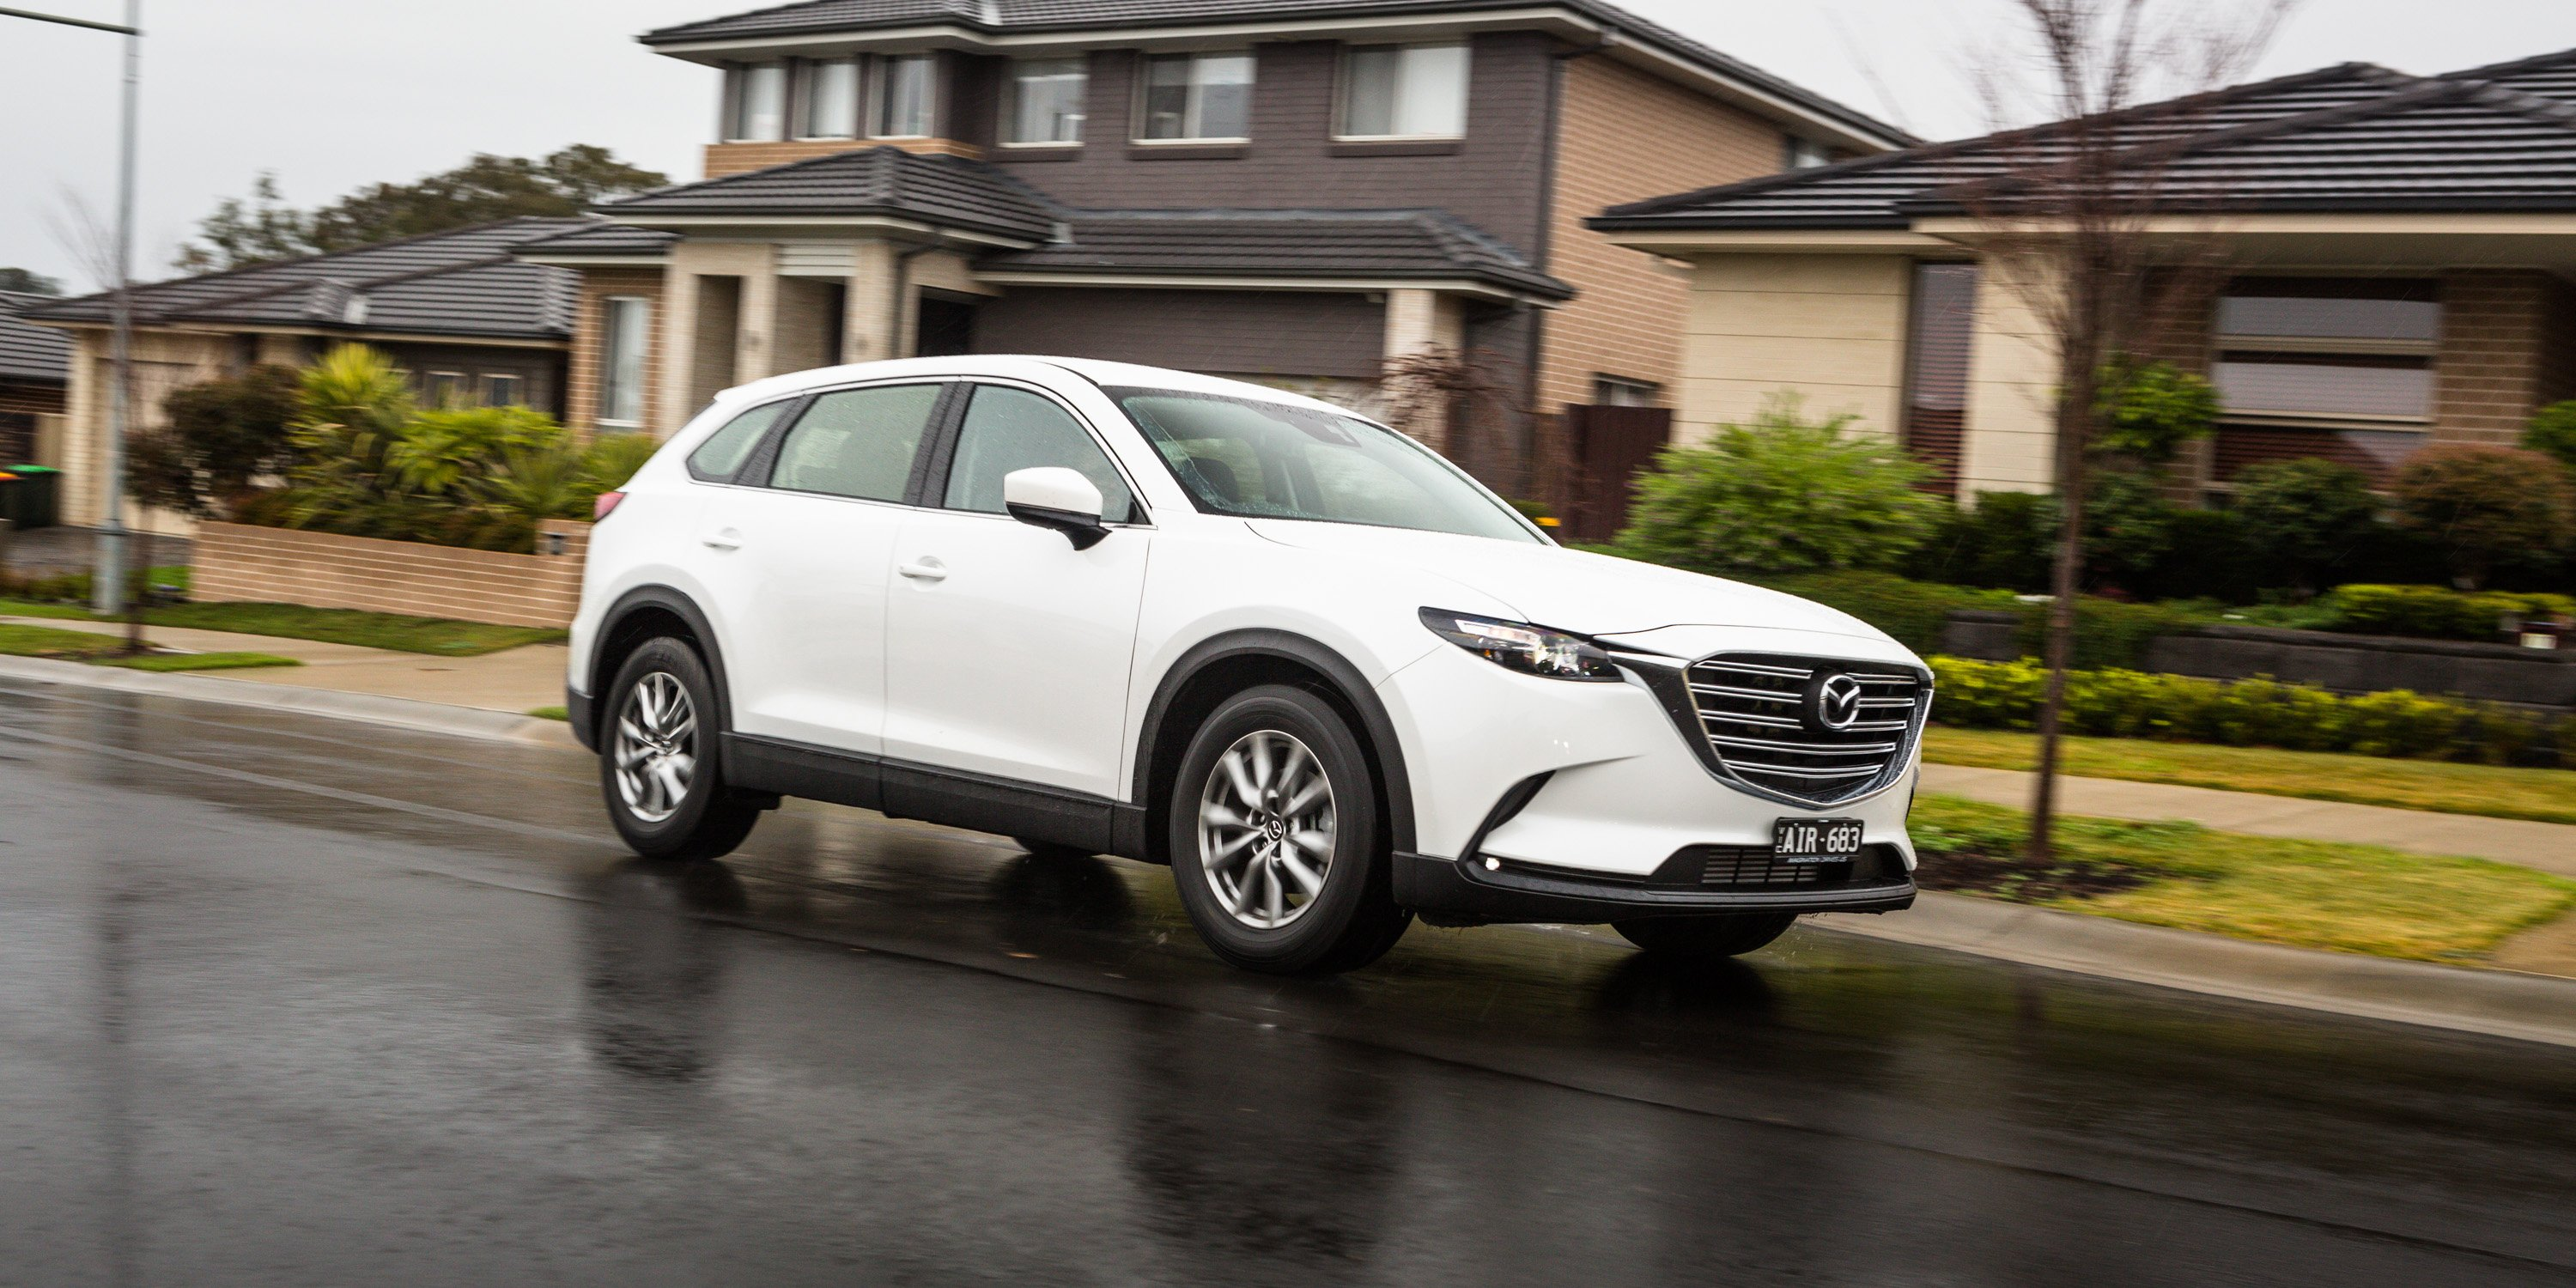 2016 mazda cx 9 touring awd review caradvice. Black Bedroom Furniture Sets. Home Design Ideas